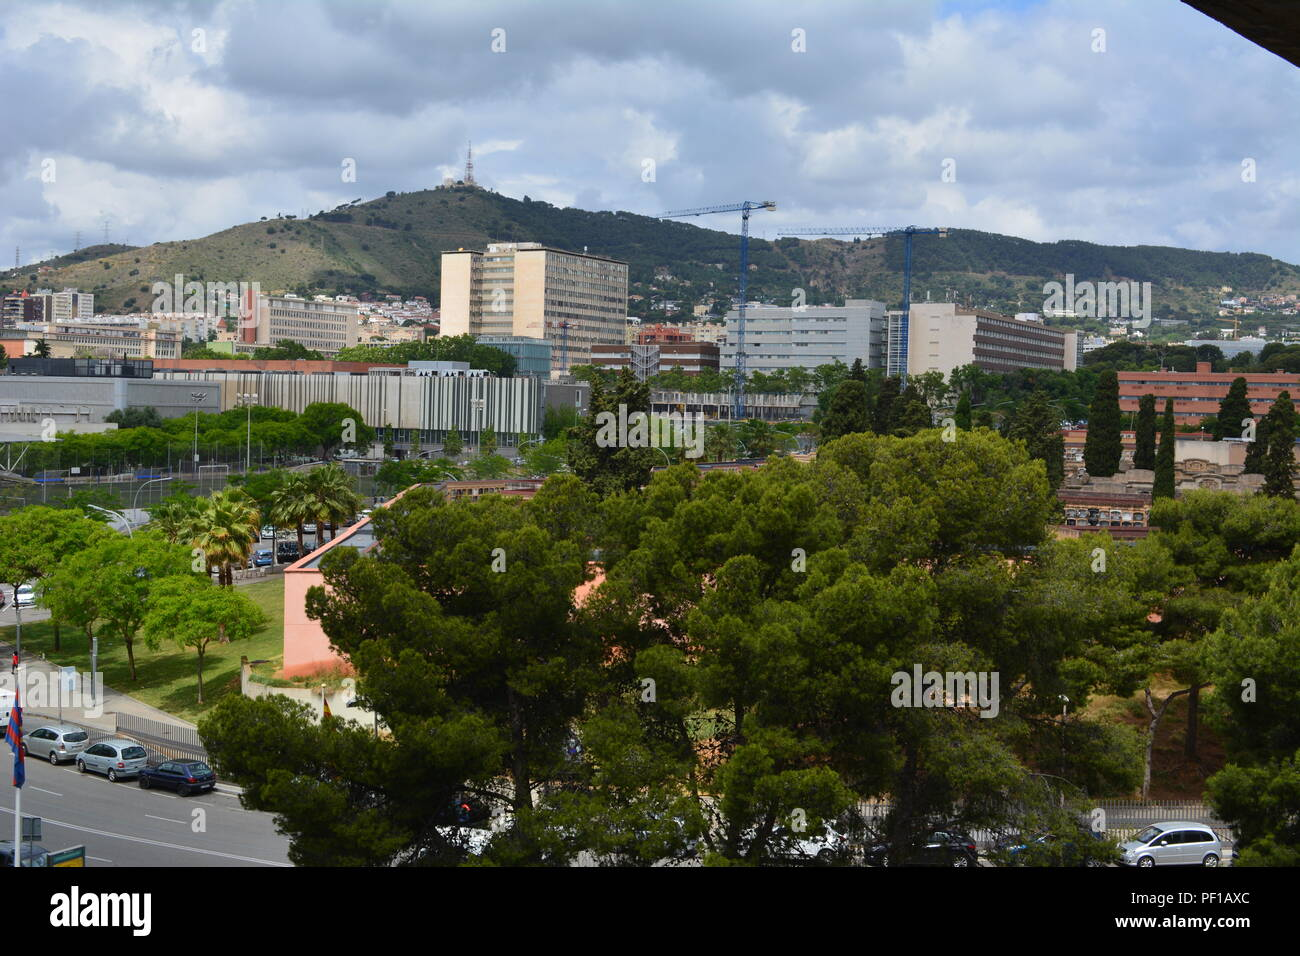 View from Camp Nou. - Stock Image